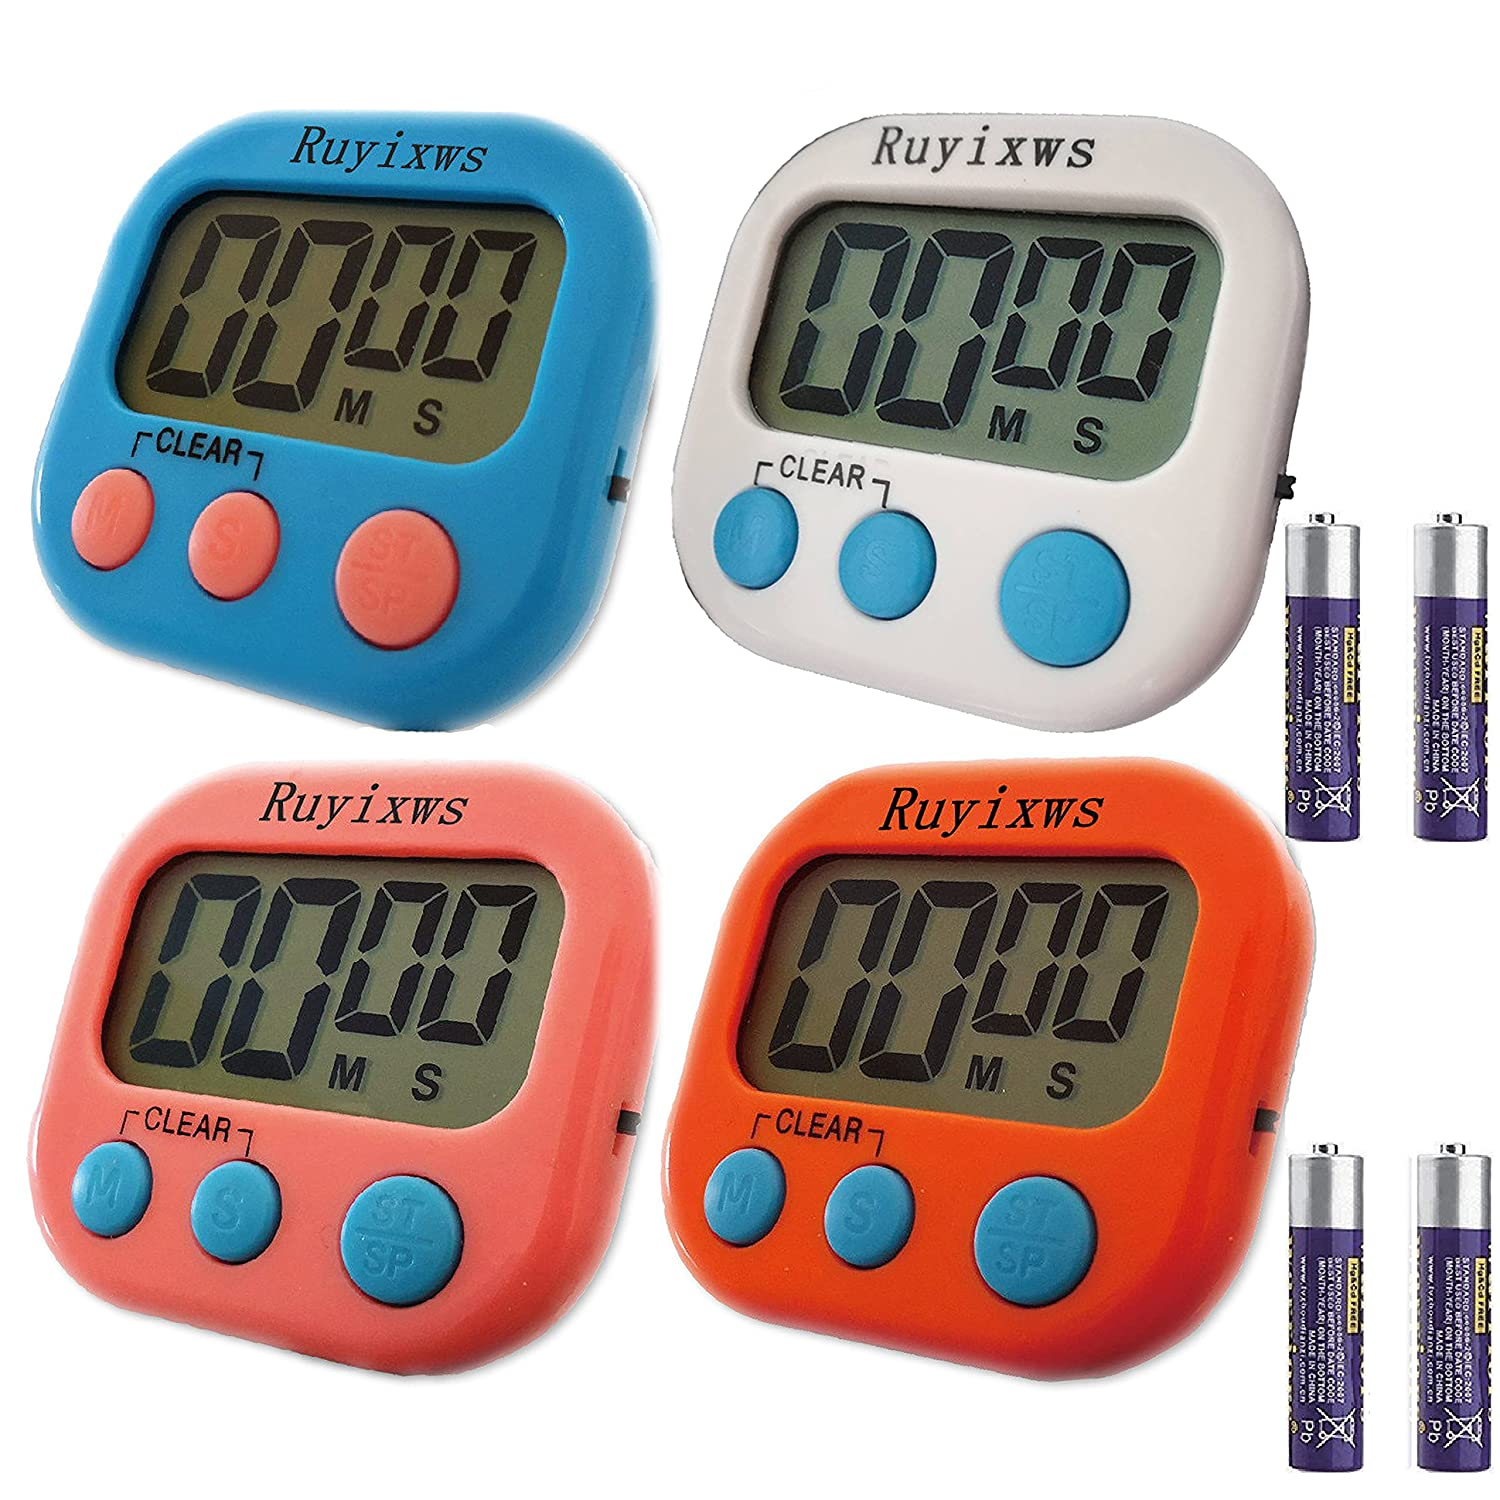 Ruyixws 4 Pack Digital Kitchen Timer with Large LCD Display, Loud Alarm, Magnetic Back with Stand, Timer for Kids Cooking Baking Sports Office, On/Off Switch, Battery Included (4 Colors)